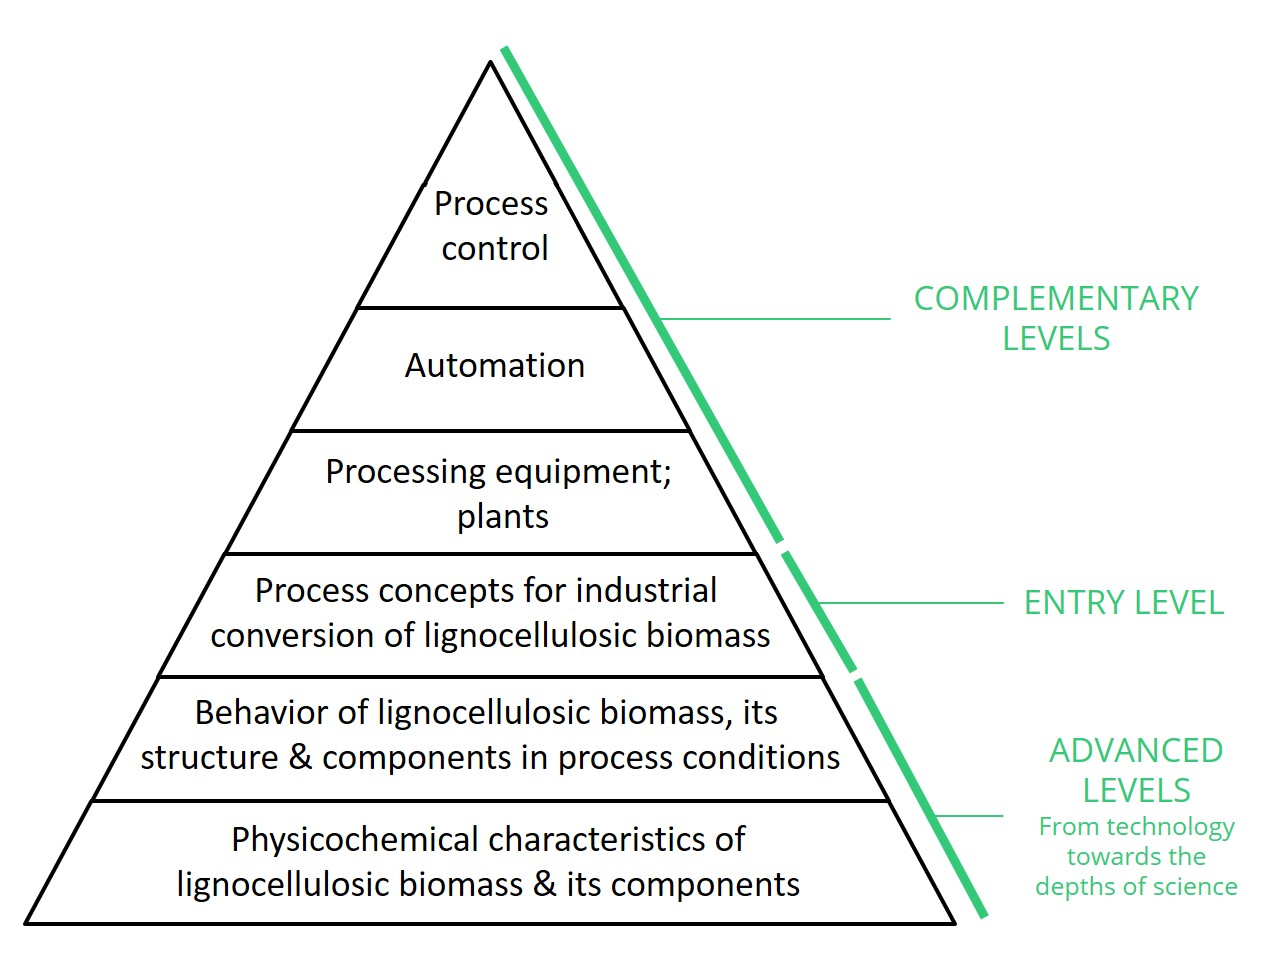 Layers of knowledge to build in-depth understanding of biomass conversion technologies. Modified from original picture by SciTech-Service Oy.